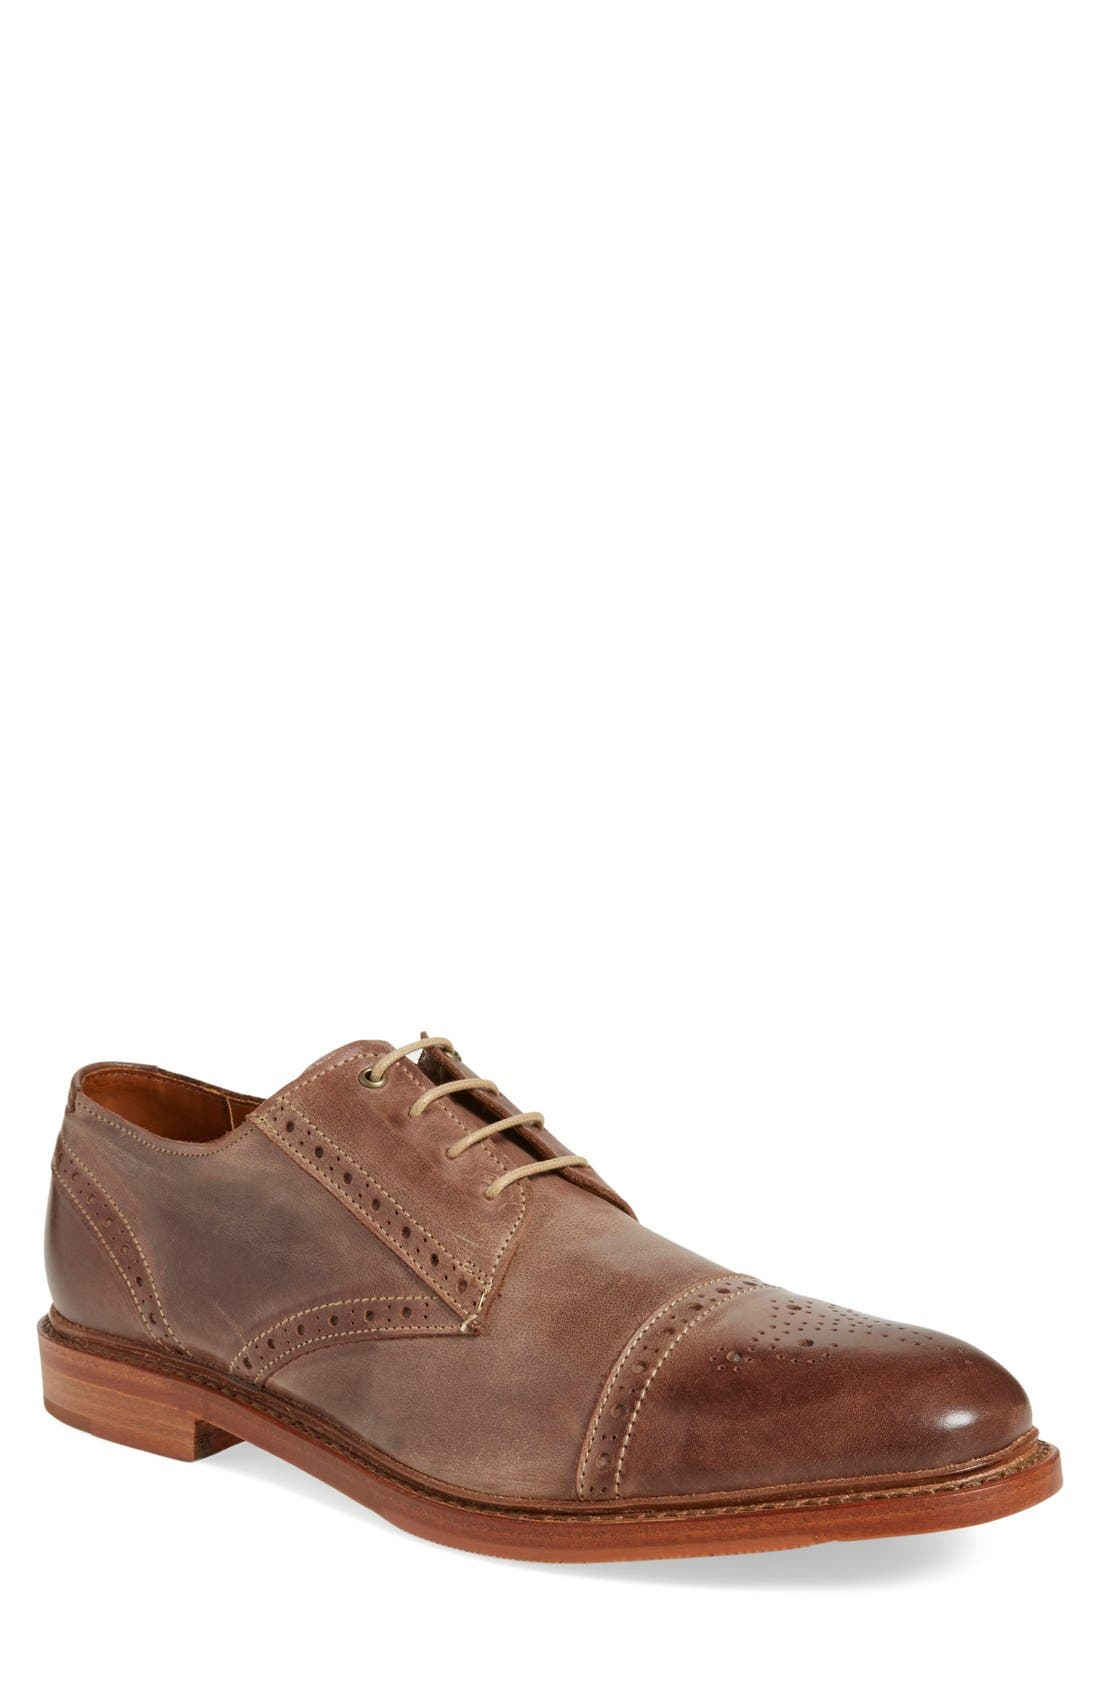 ALLEN EDMONDS Bainbridge Cap Toe Derby